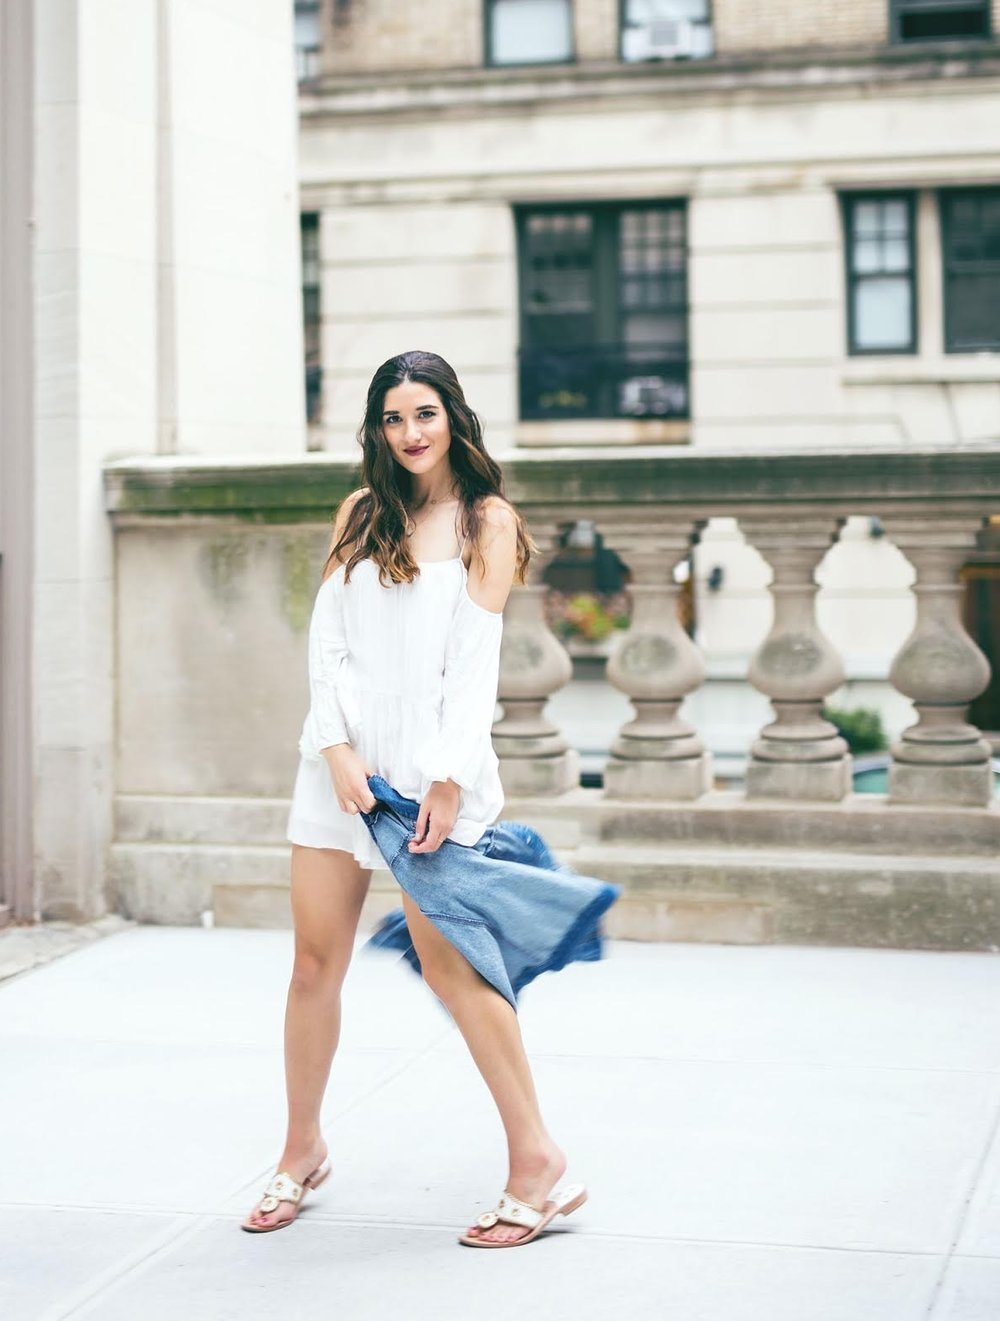 White Romper Jack Rogers Sandals Louboutins & Love Fashion Blog Esther Santer NYC Street Style Blogger Outfit OOTD Trendy Summer Spring Shopping Girls Women Hair Jean Jacket Denim Chokers Leather Shoes Quality Long Sleeves Pretty Cute Beautiful Look.jpg